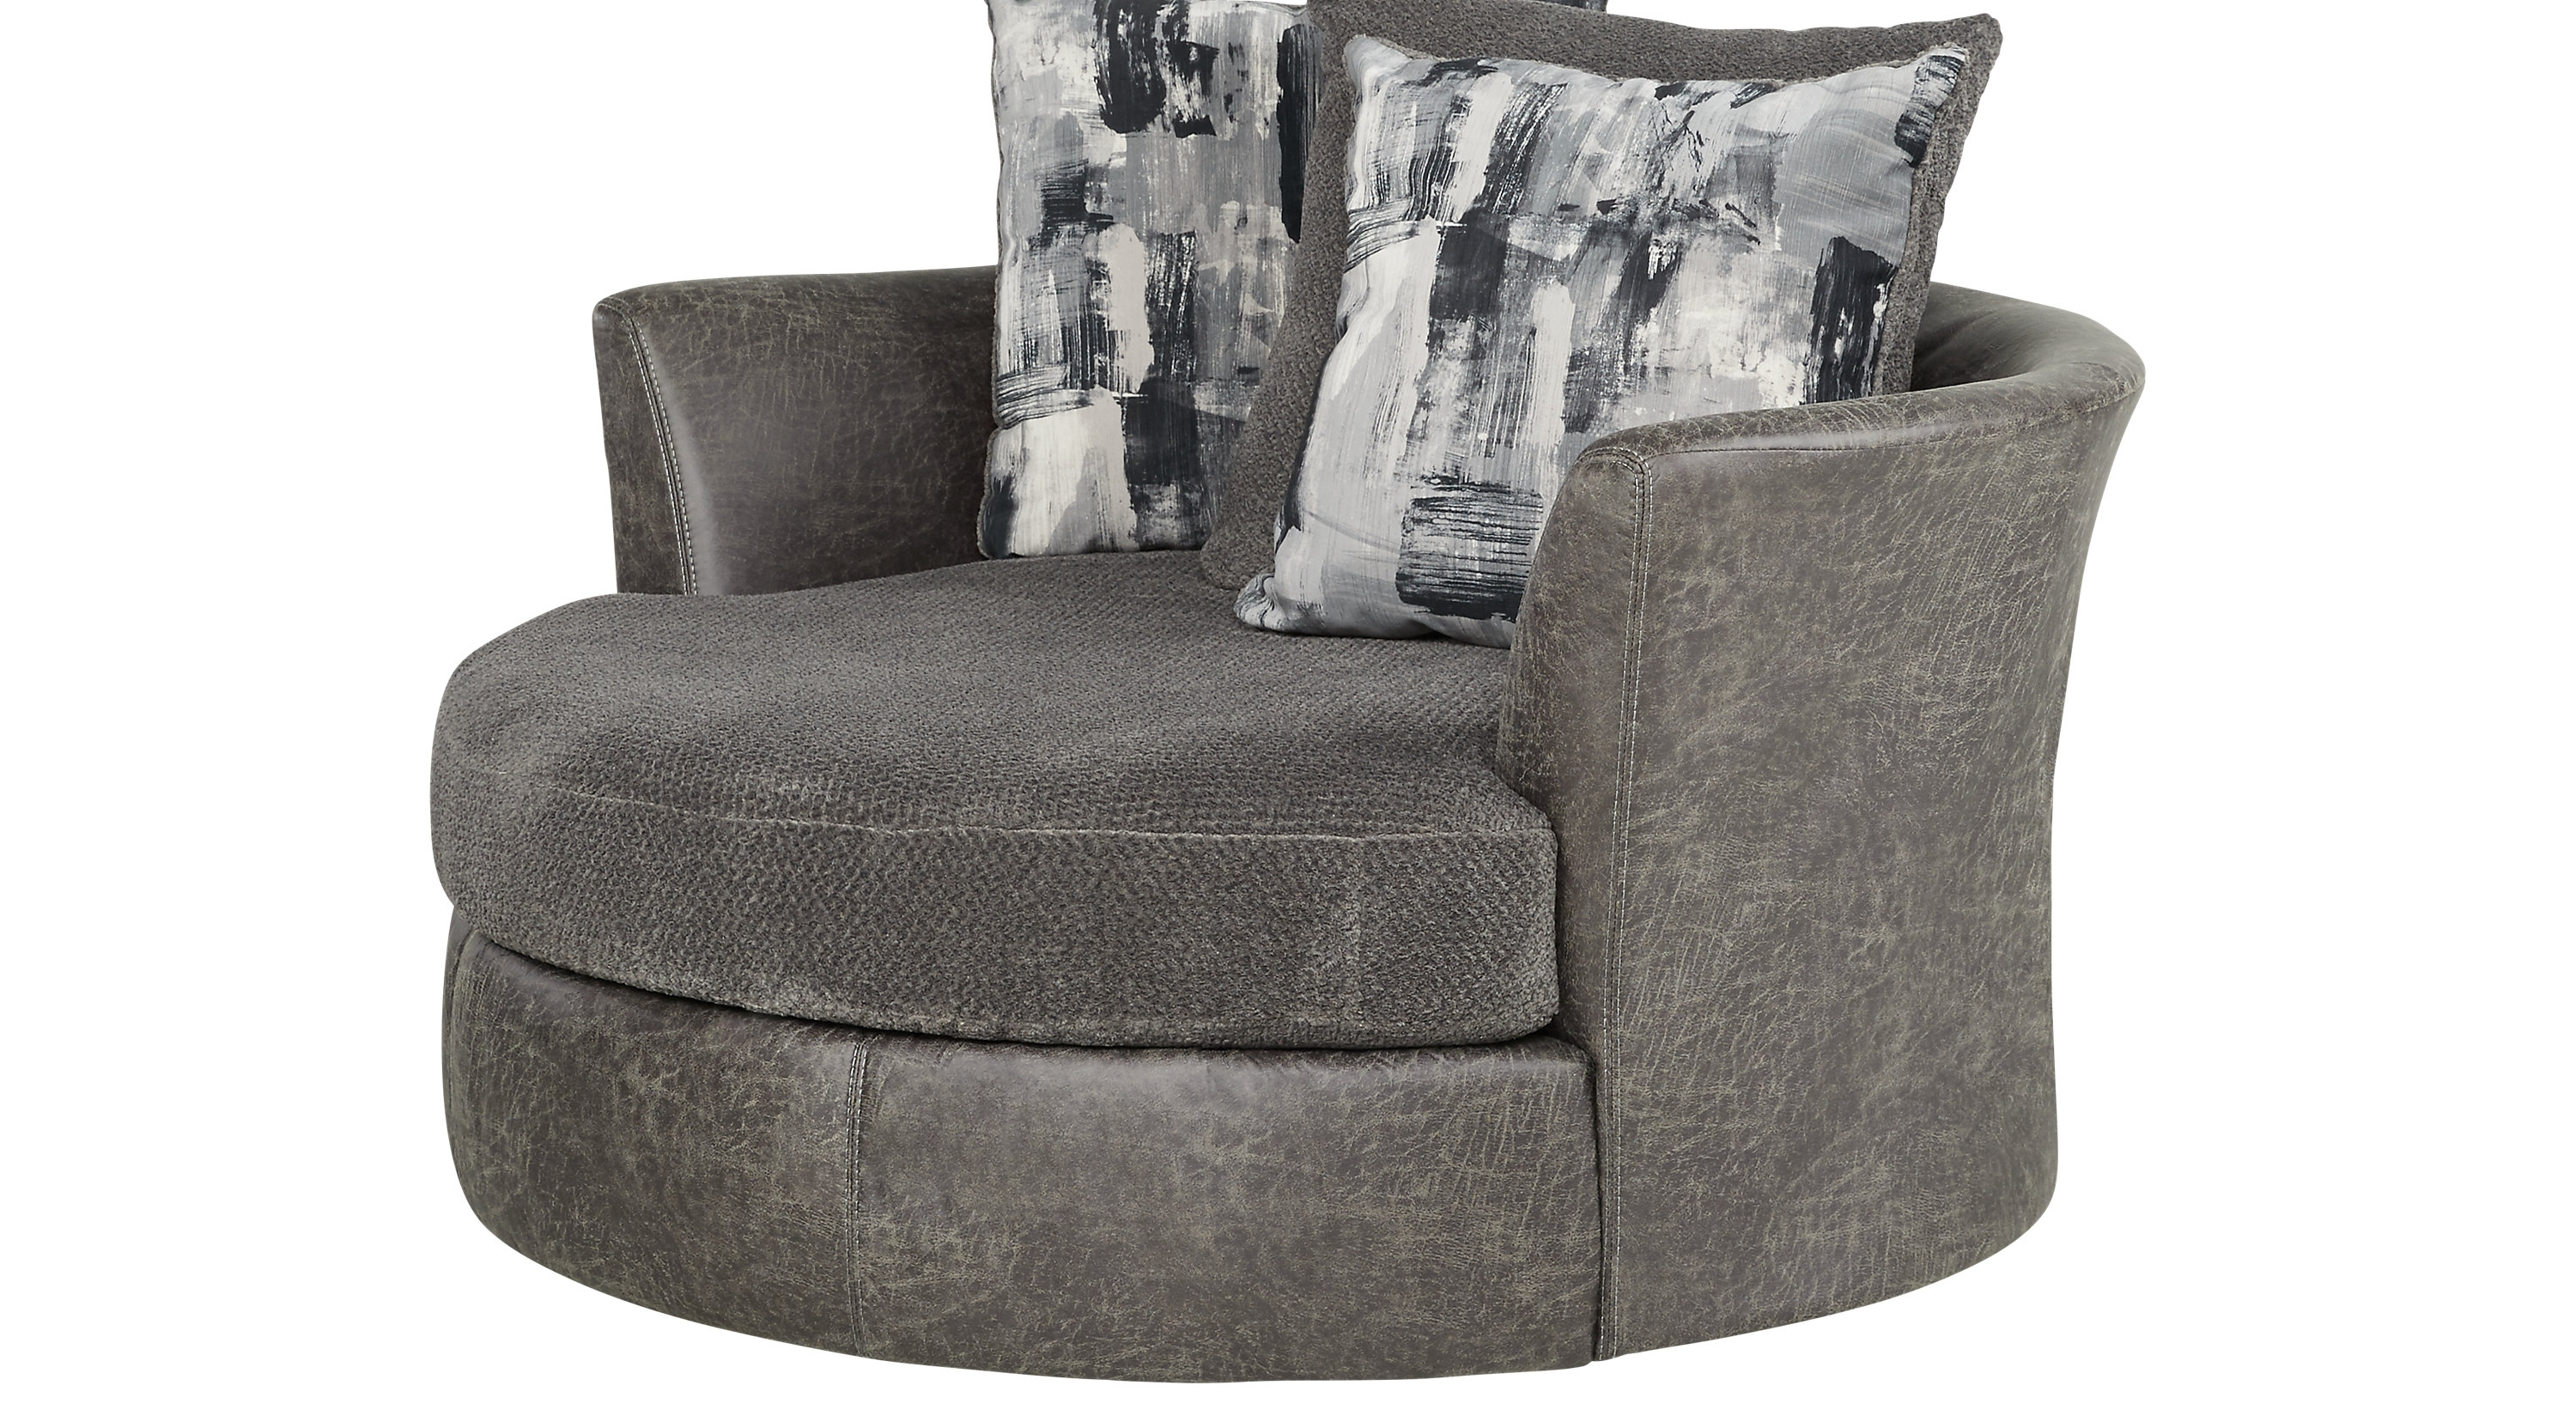 Round Sofa Chair, Round Couch Chair Intended For Famous Sofas With Swivel Chair (View 19 of 20)